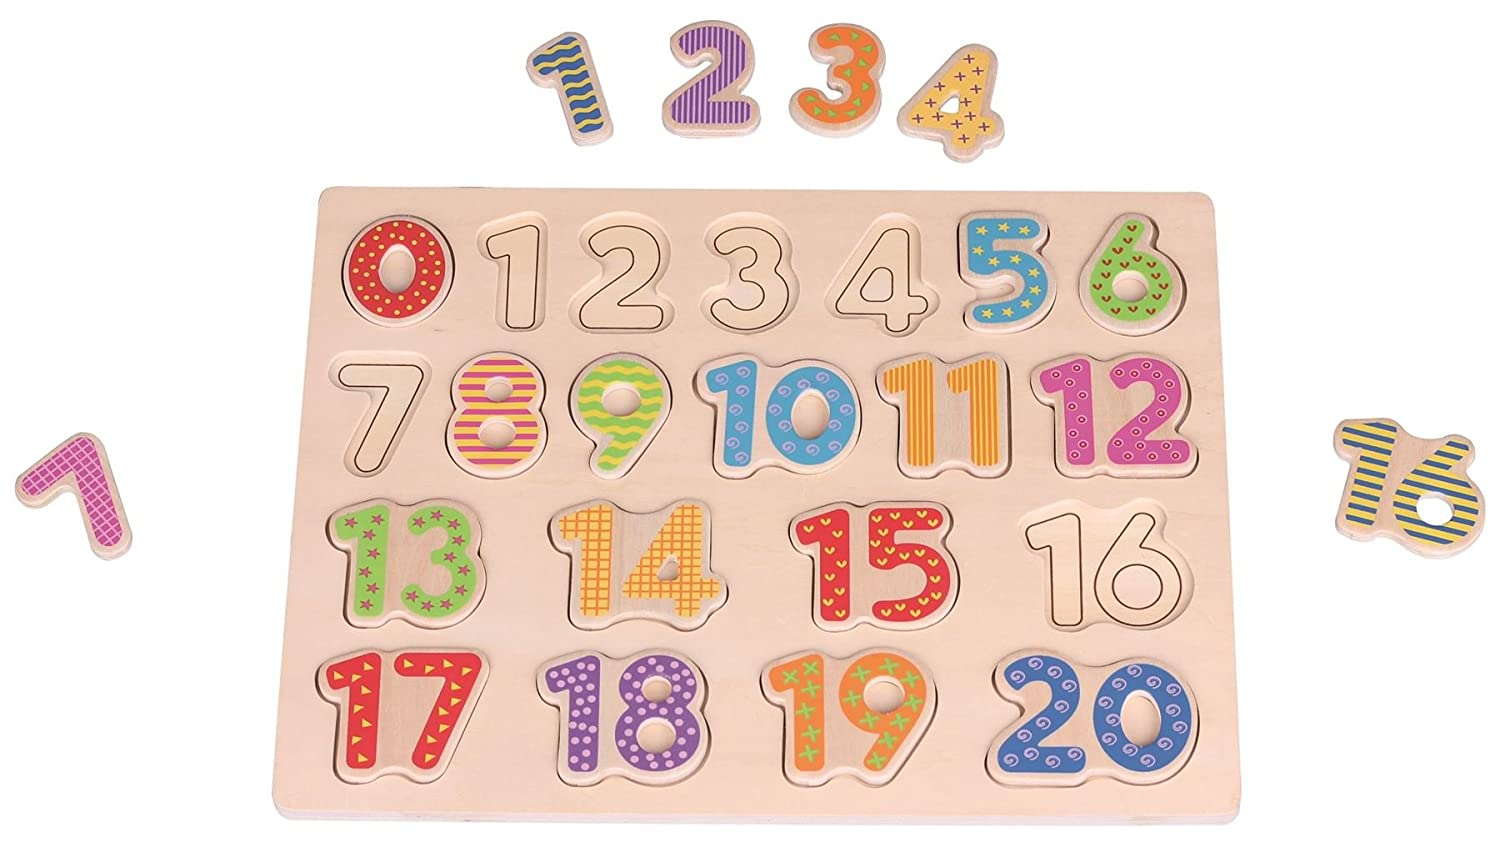 Lelin Children Kids Wood Wooden Creative Education Number Puzzle Board Toy L20001